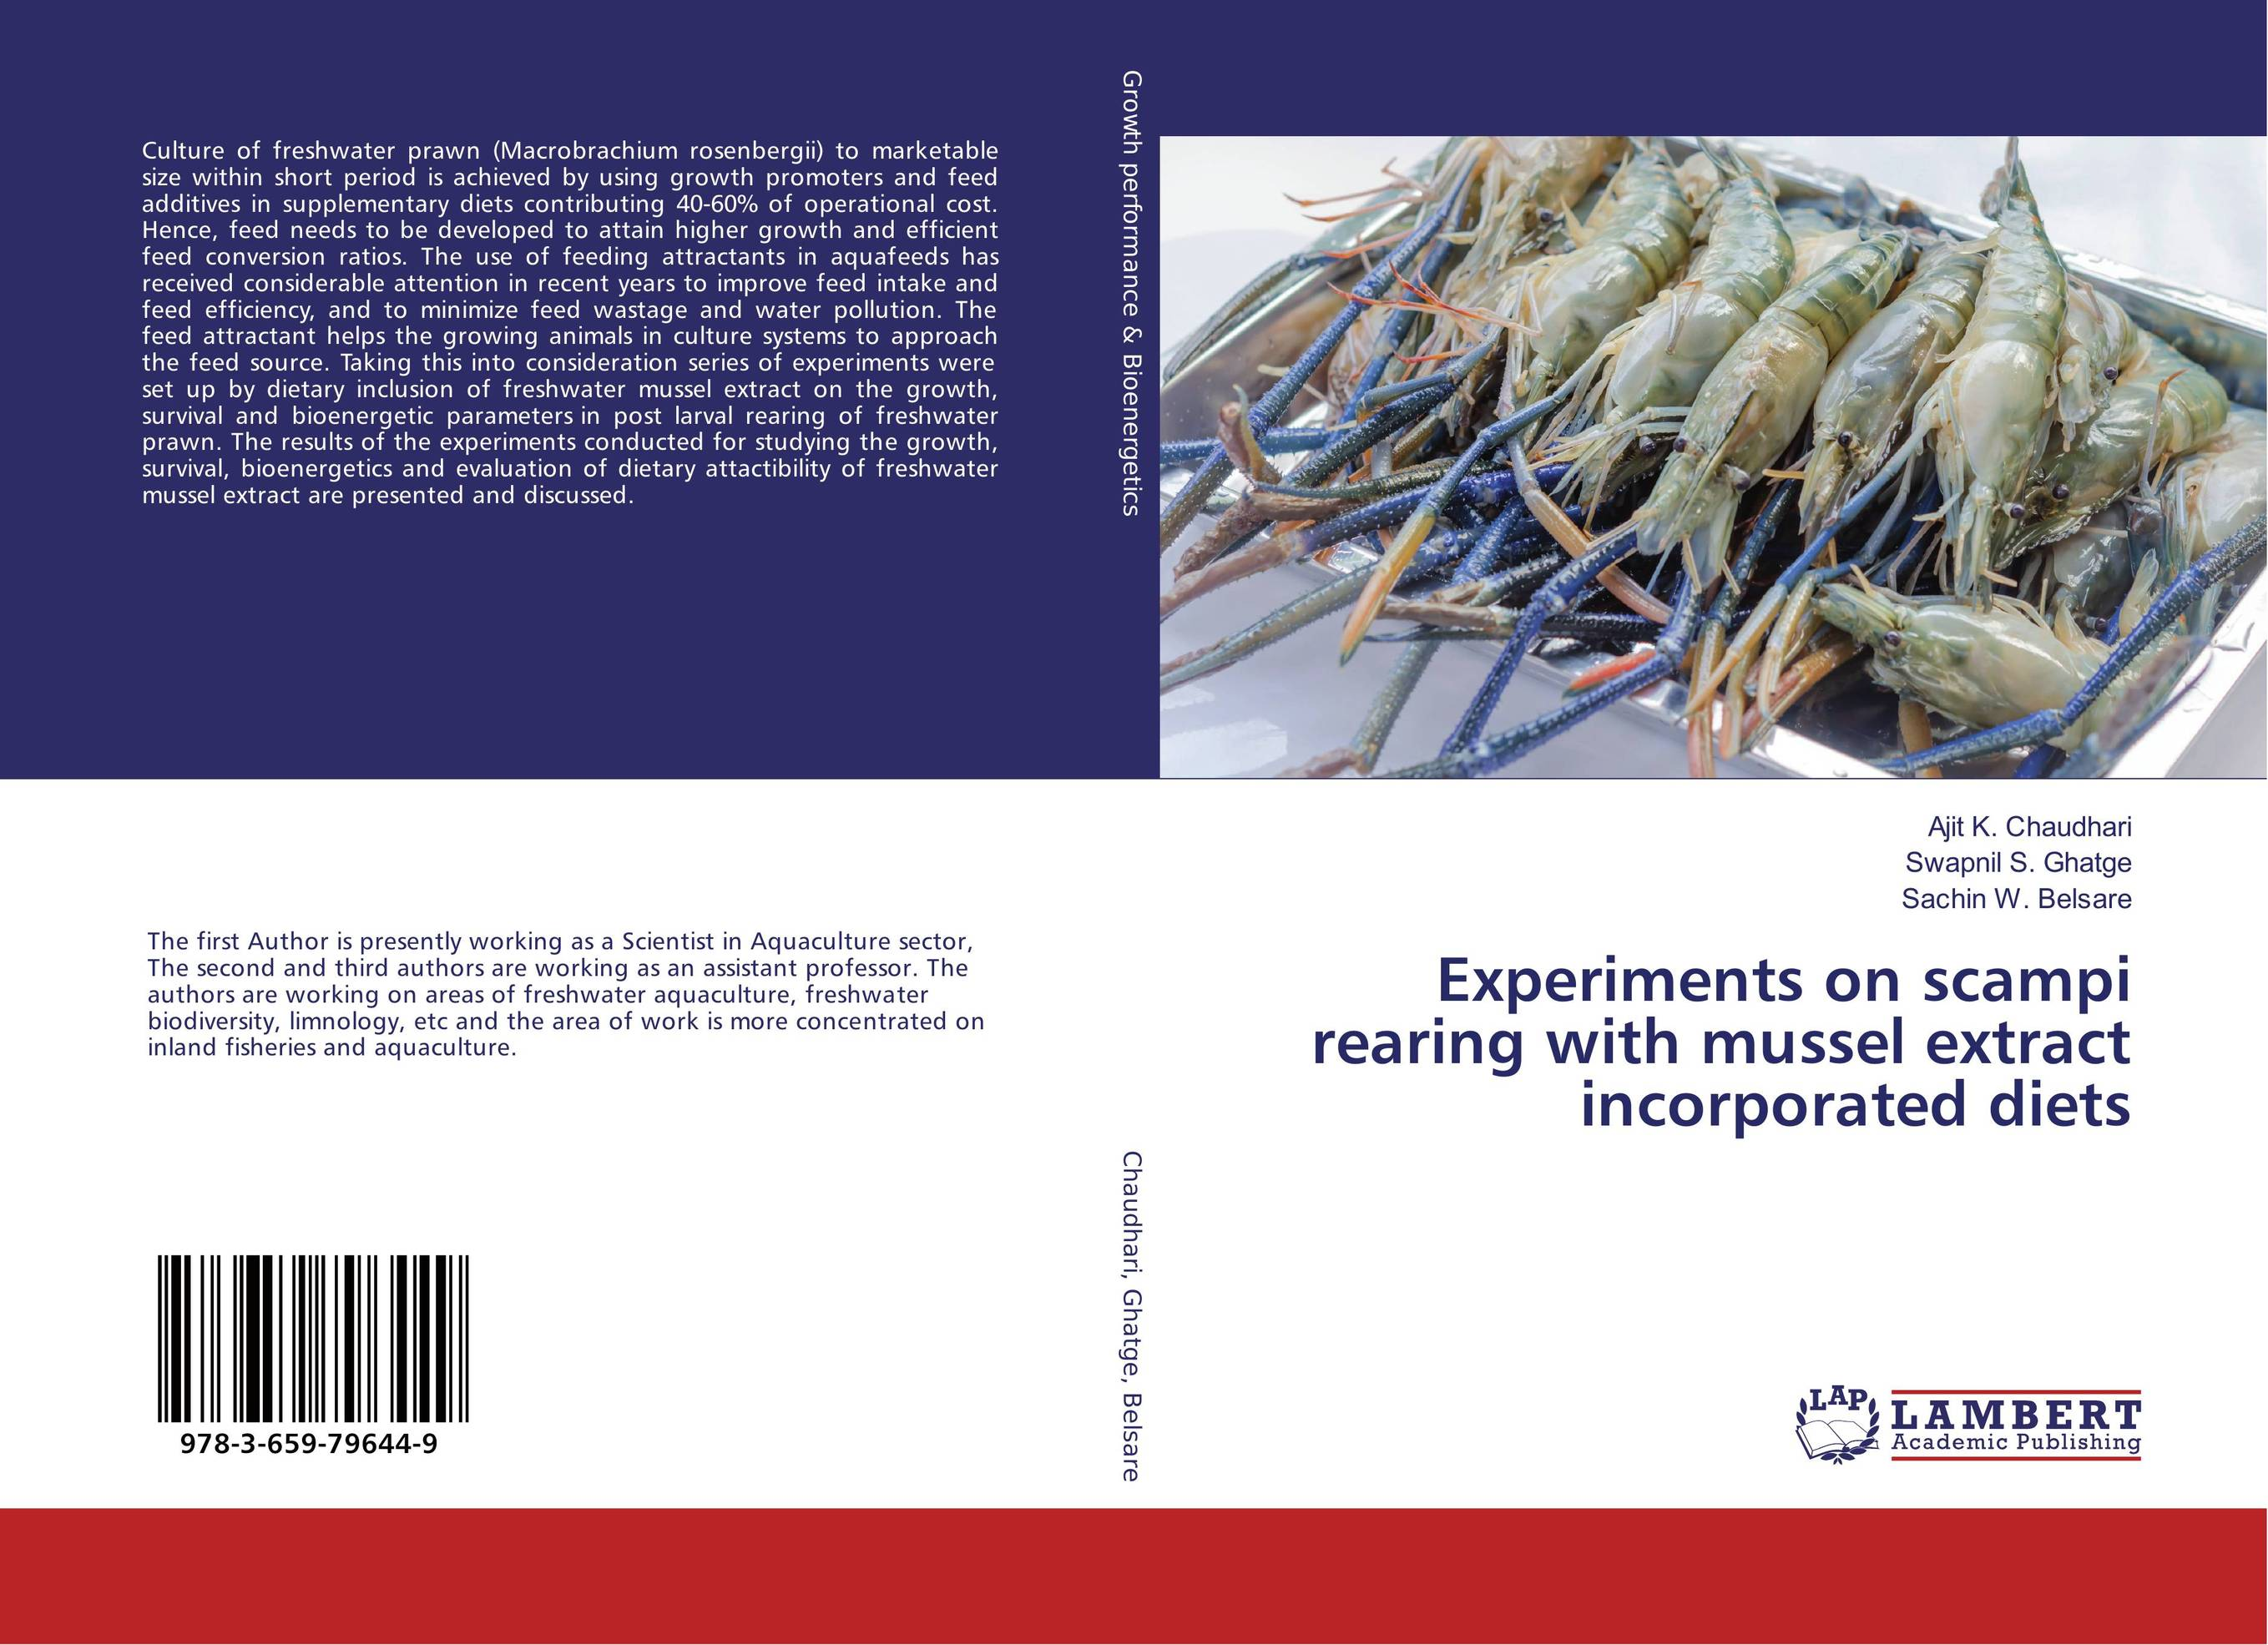 Experiments on scampi rearing with mussel extract incorporated diets microbial quality of freshwater prawn